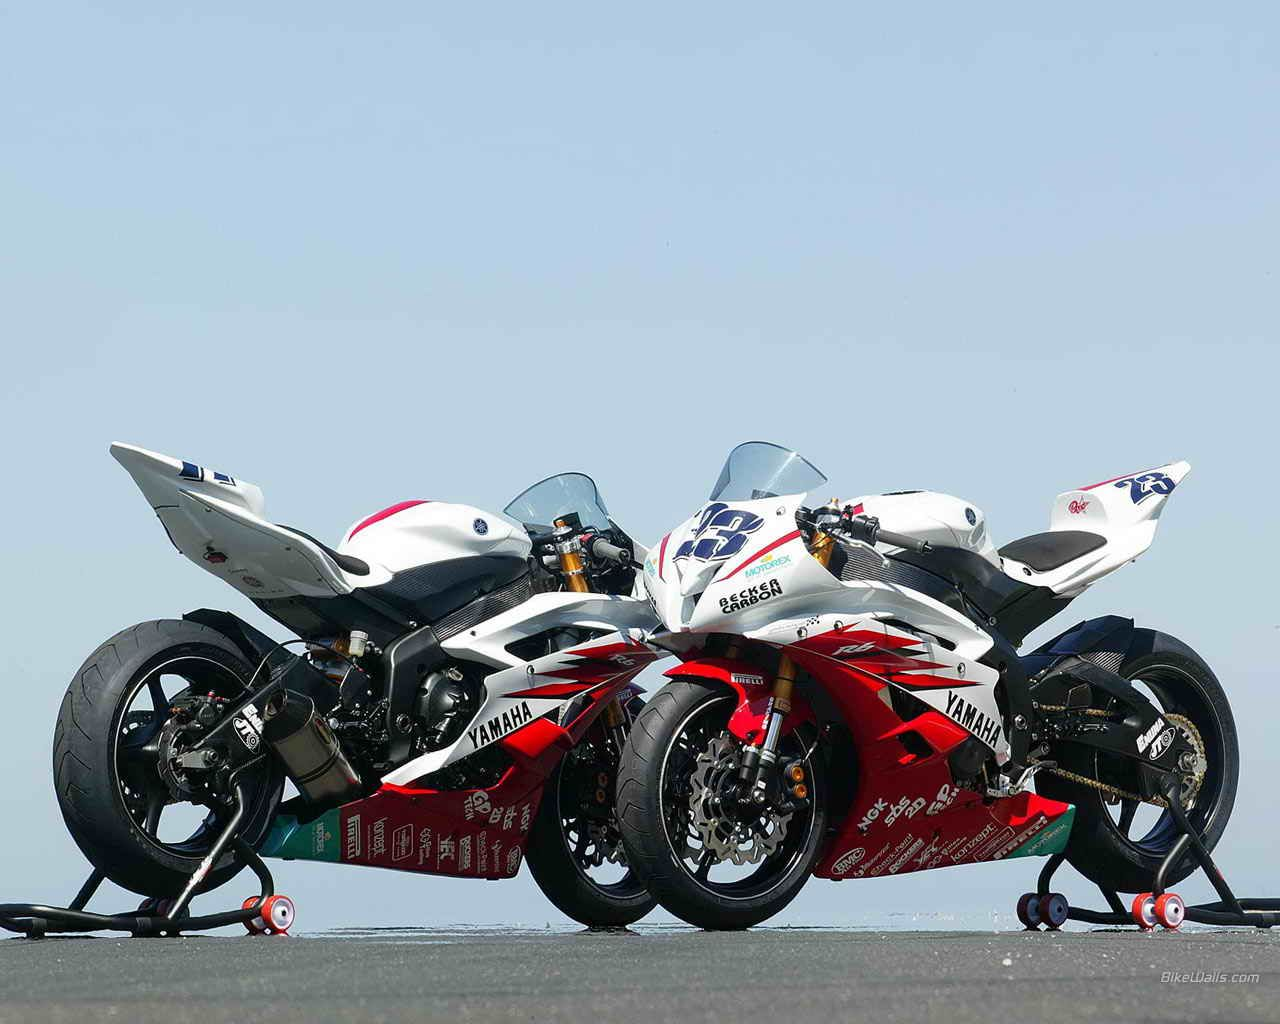 Double trouble with 2 yamaha yzf motorcycles